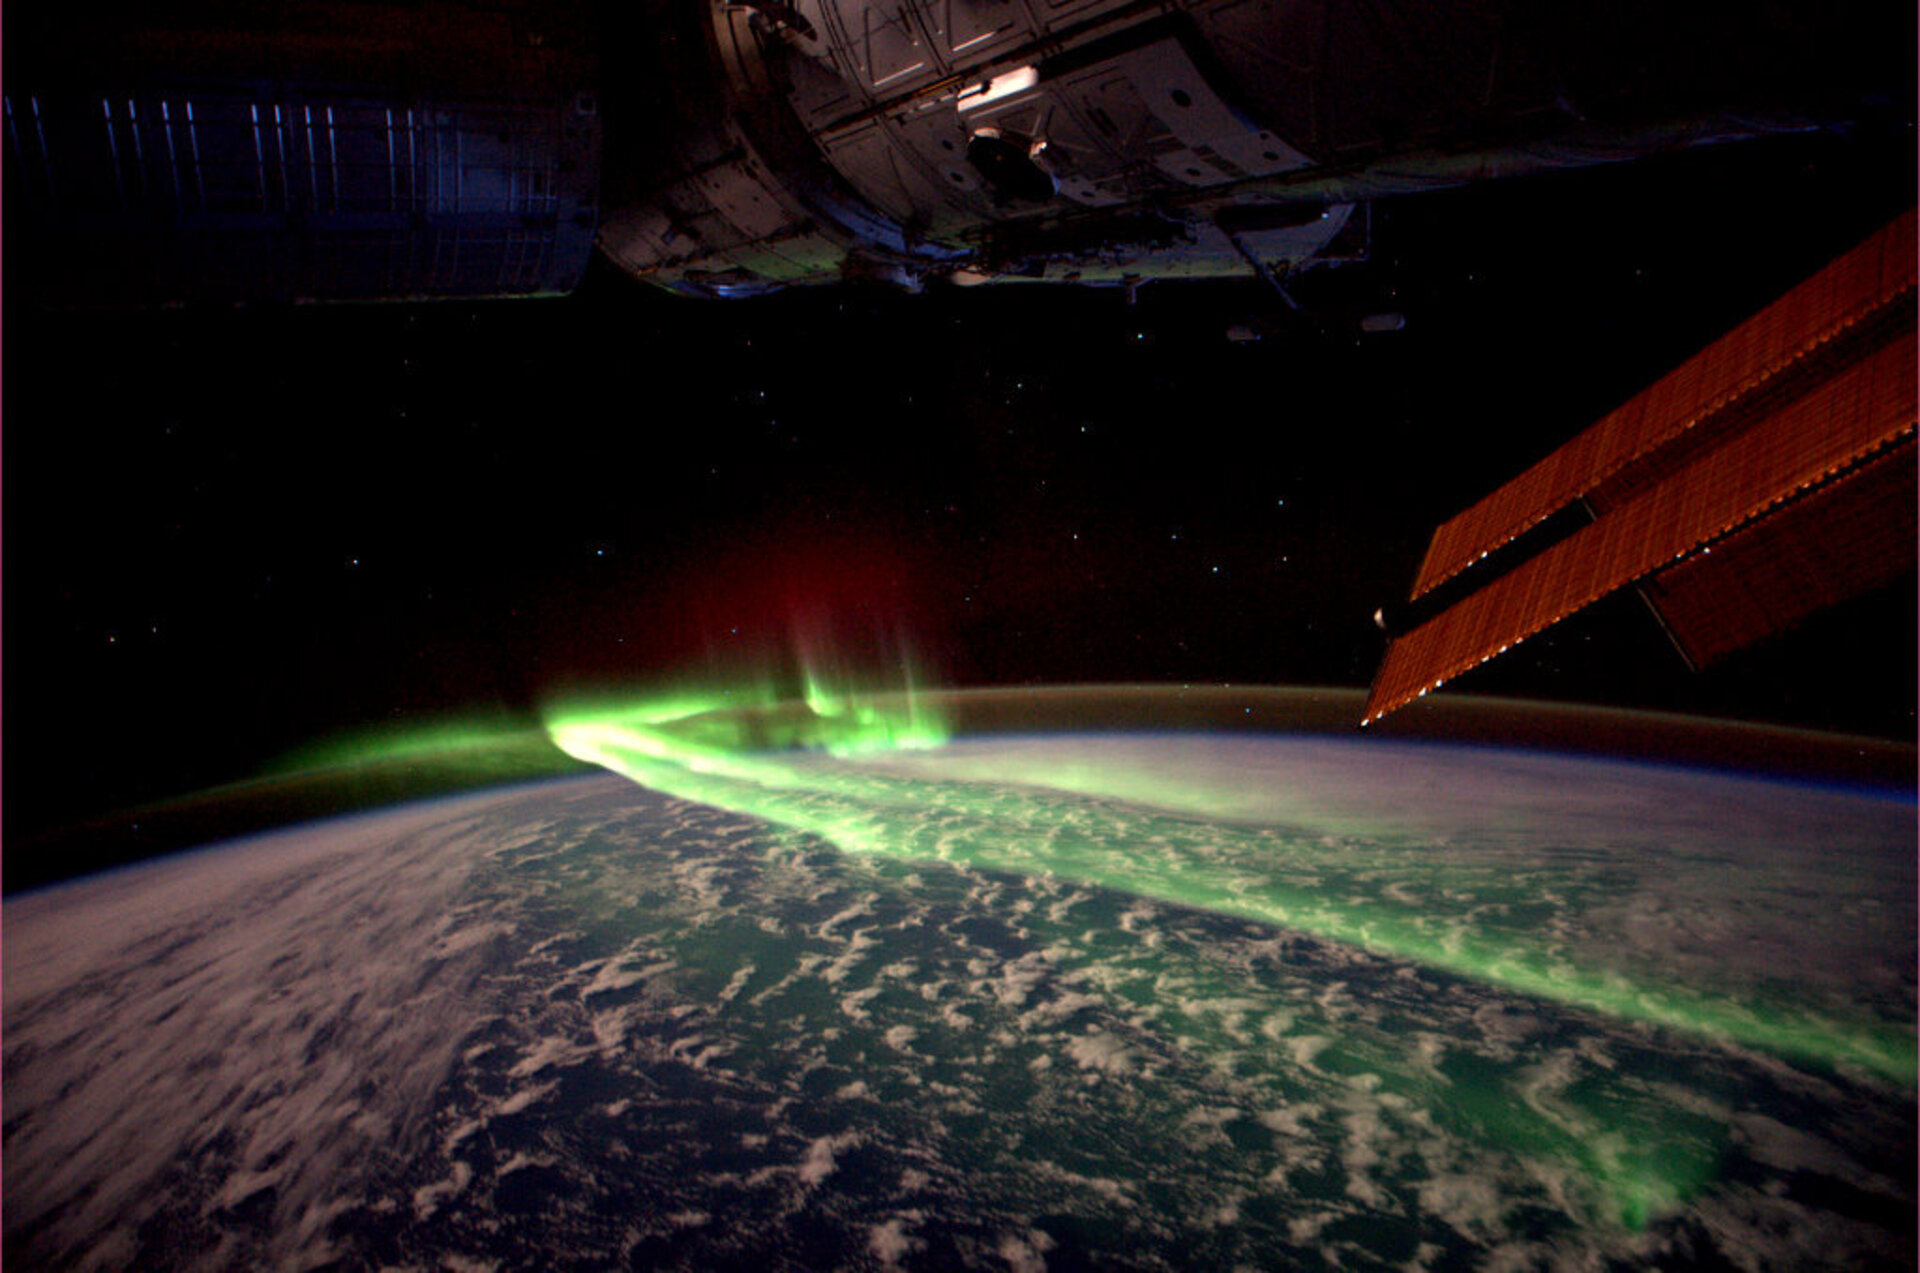 Aurora Australis, as seen from the ISS